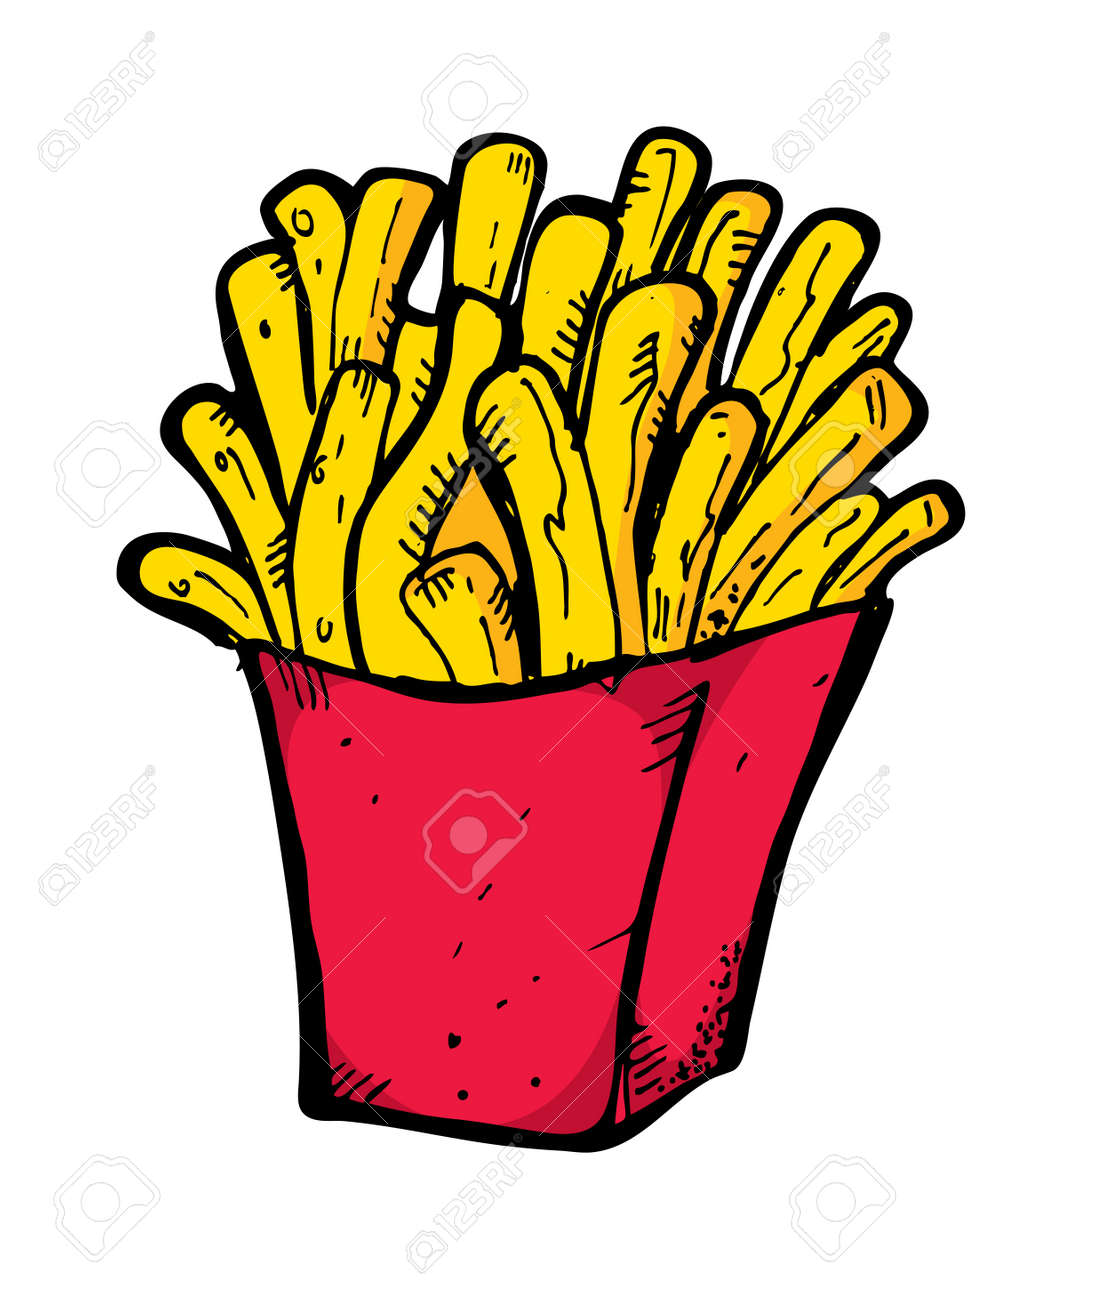 french fries hand drawn Stock Vector - 13621387